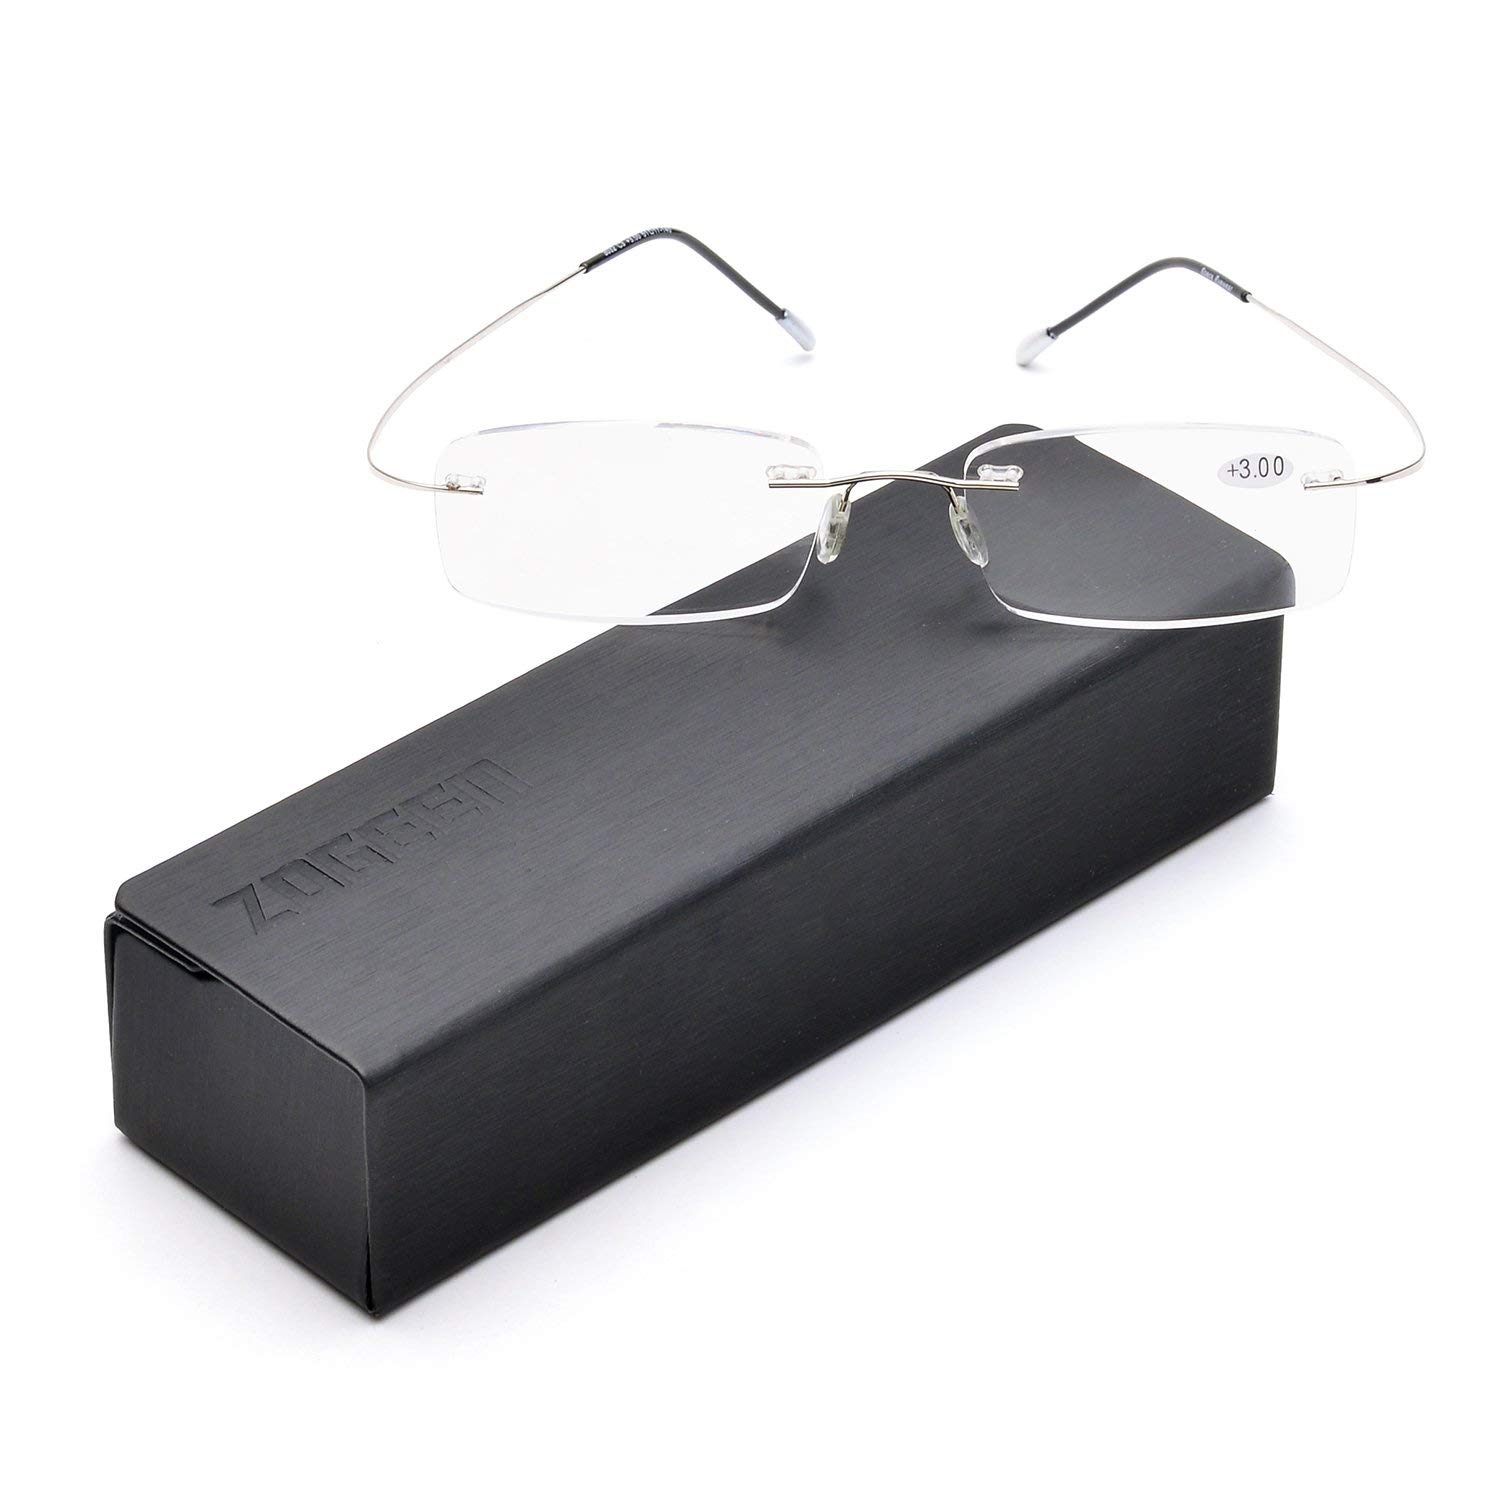 1669d42b0d4f Get Quotations · Memory Lightweight Titanium Stainless Steel Rimless  Reading Glasses with Light Lenses 1004